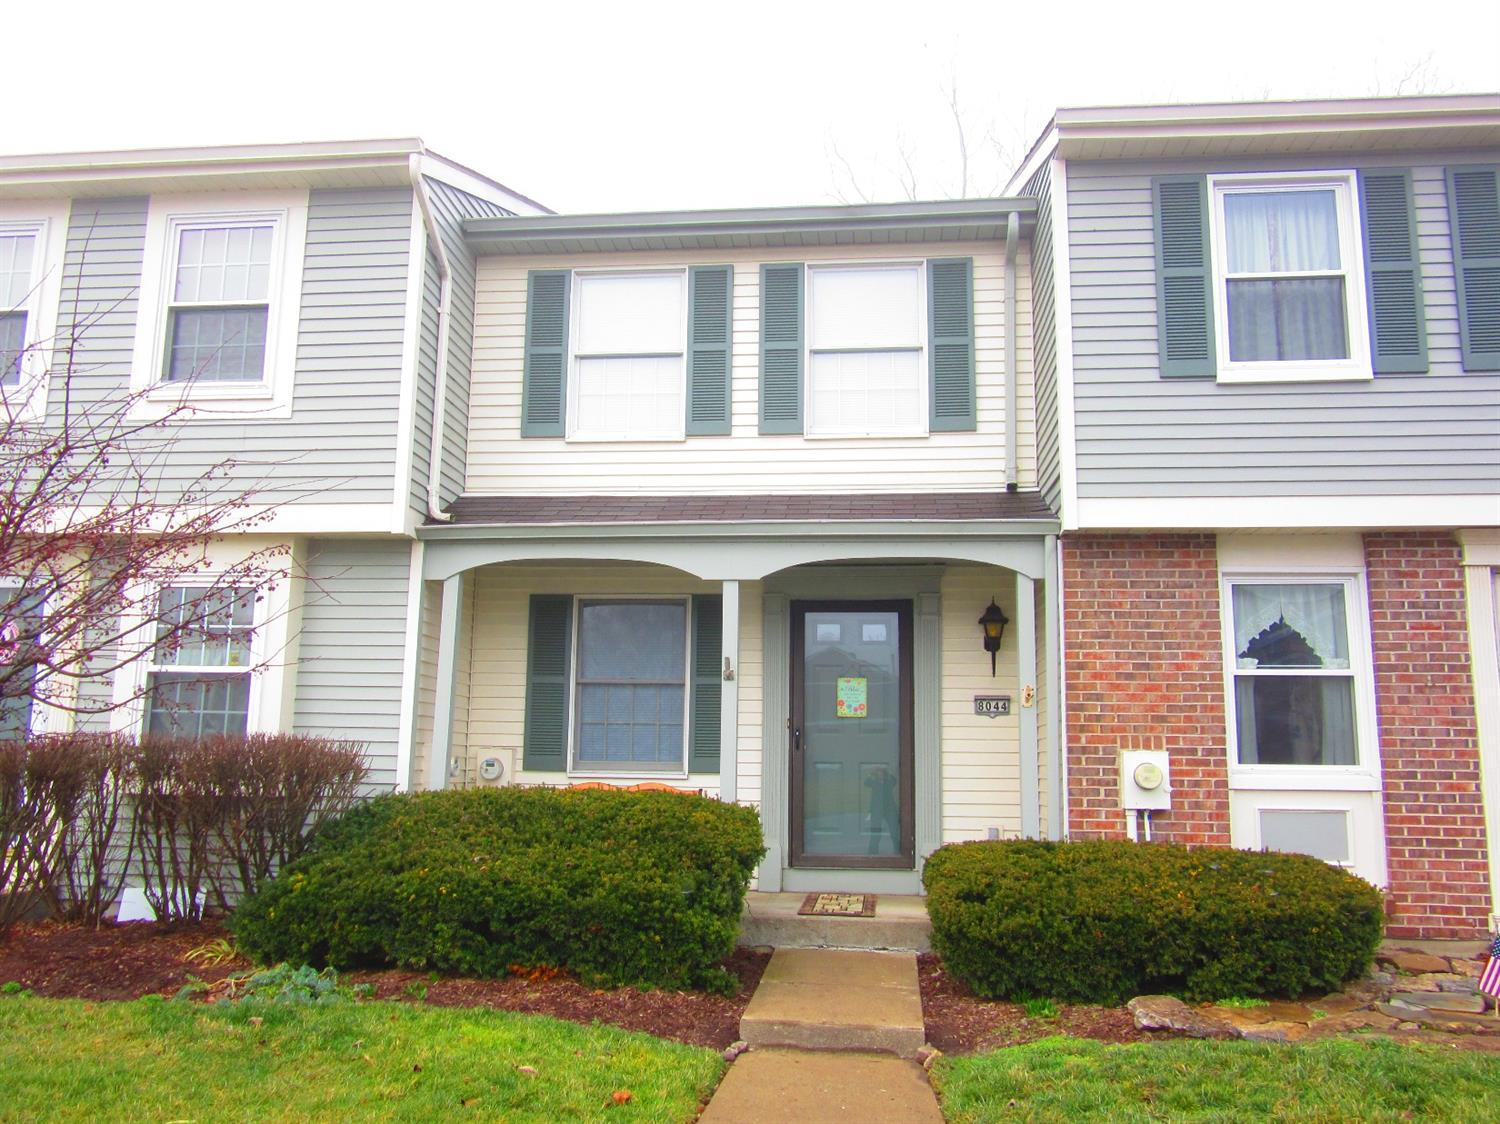 8044 Mill Creek Cir, West Chester, OH